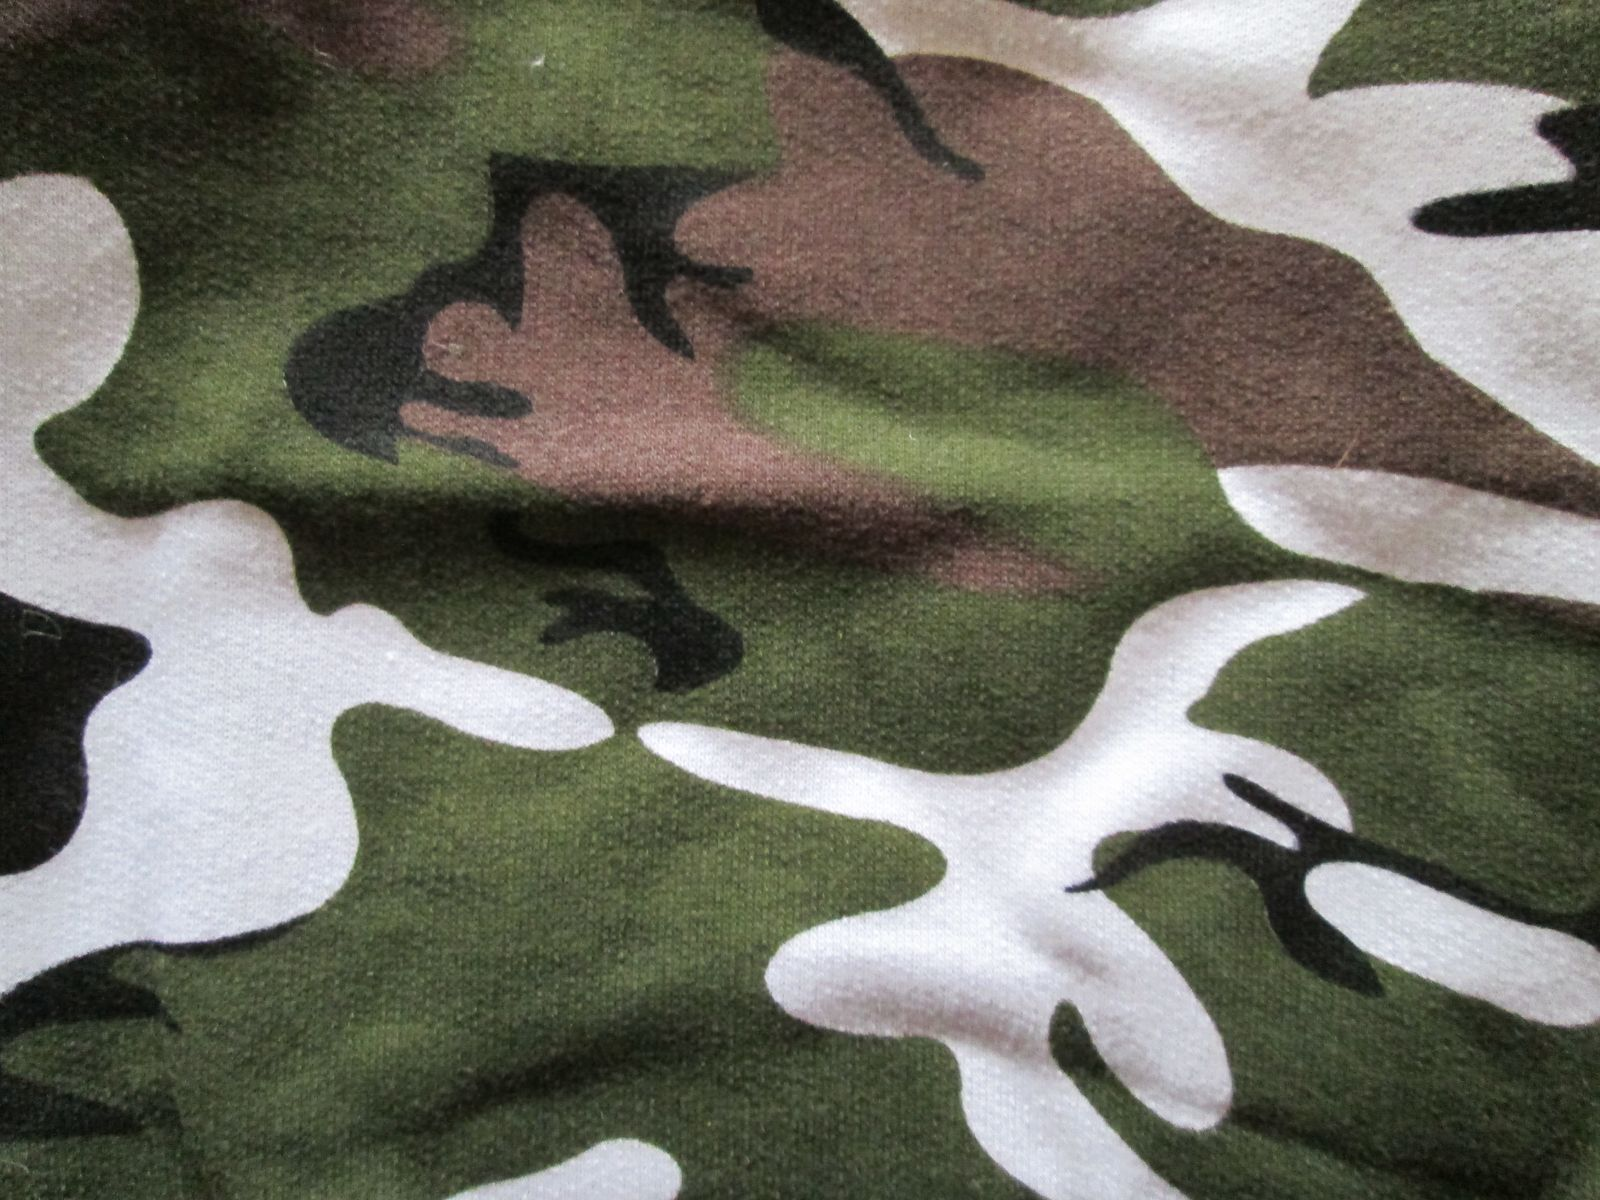 Puppy Pet Dog Hoodie Clothes Military Style Camouflage Winter Dog Clothing Jacket Soft Warm Jumper Sweater for Small Medium Dog